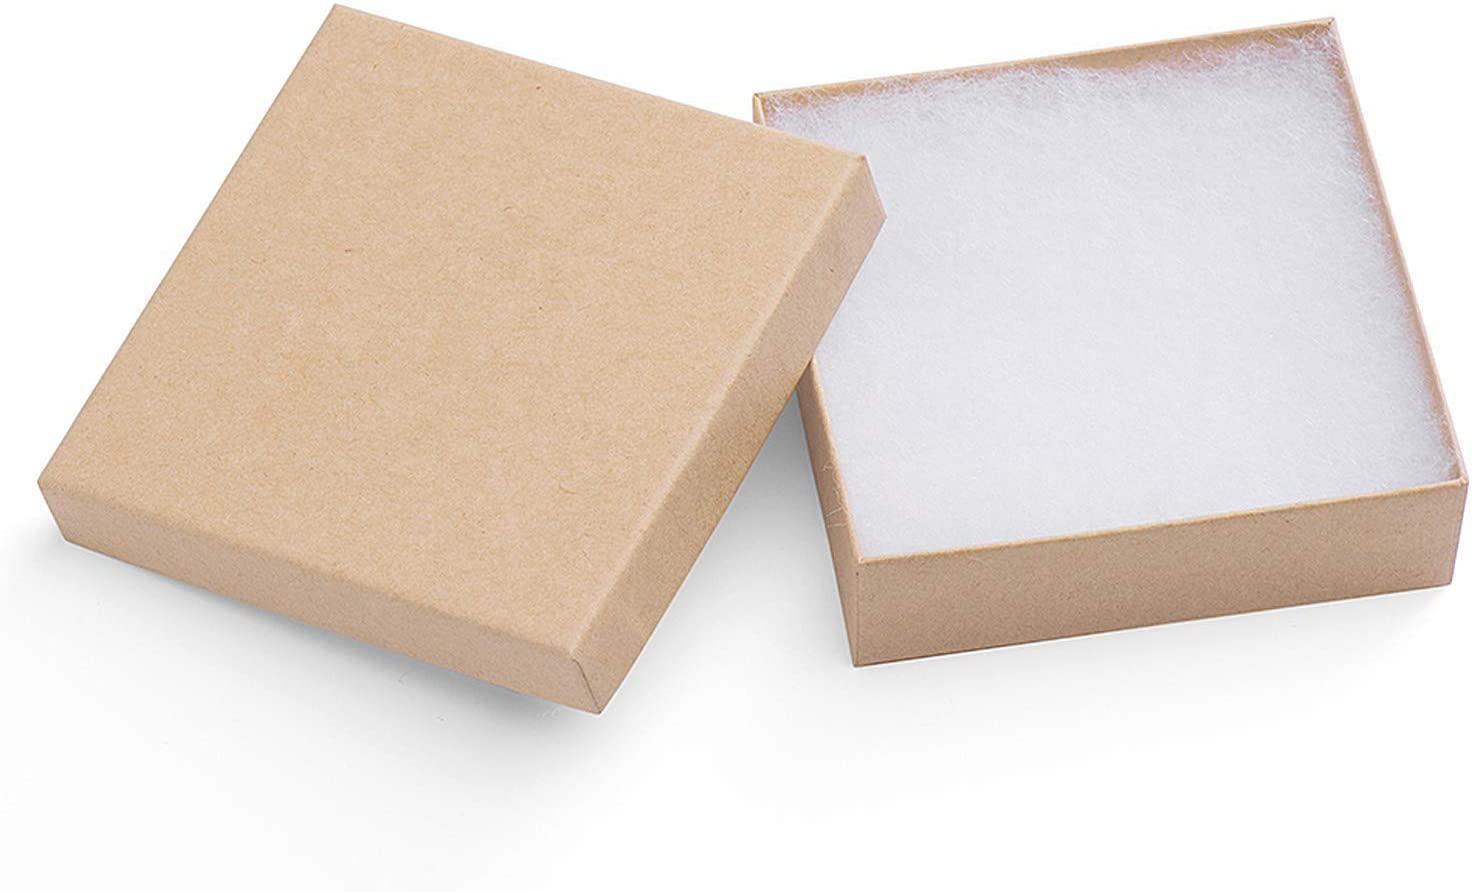 White Swirl Cotton Filled Jewelry Gift Boxes For Displays Showcases Kit 50 Pcs